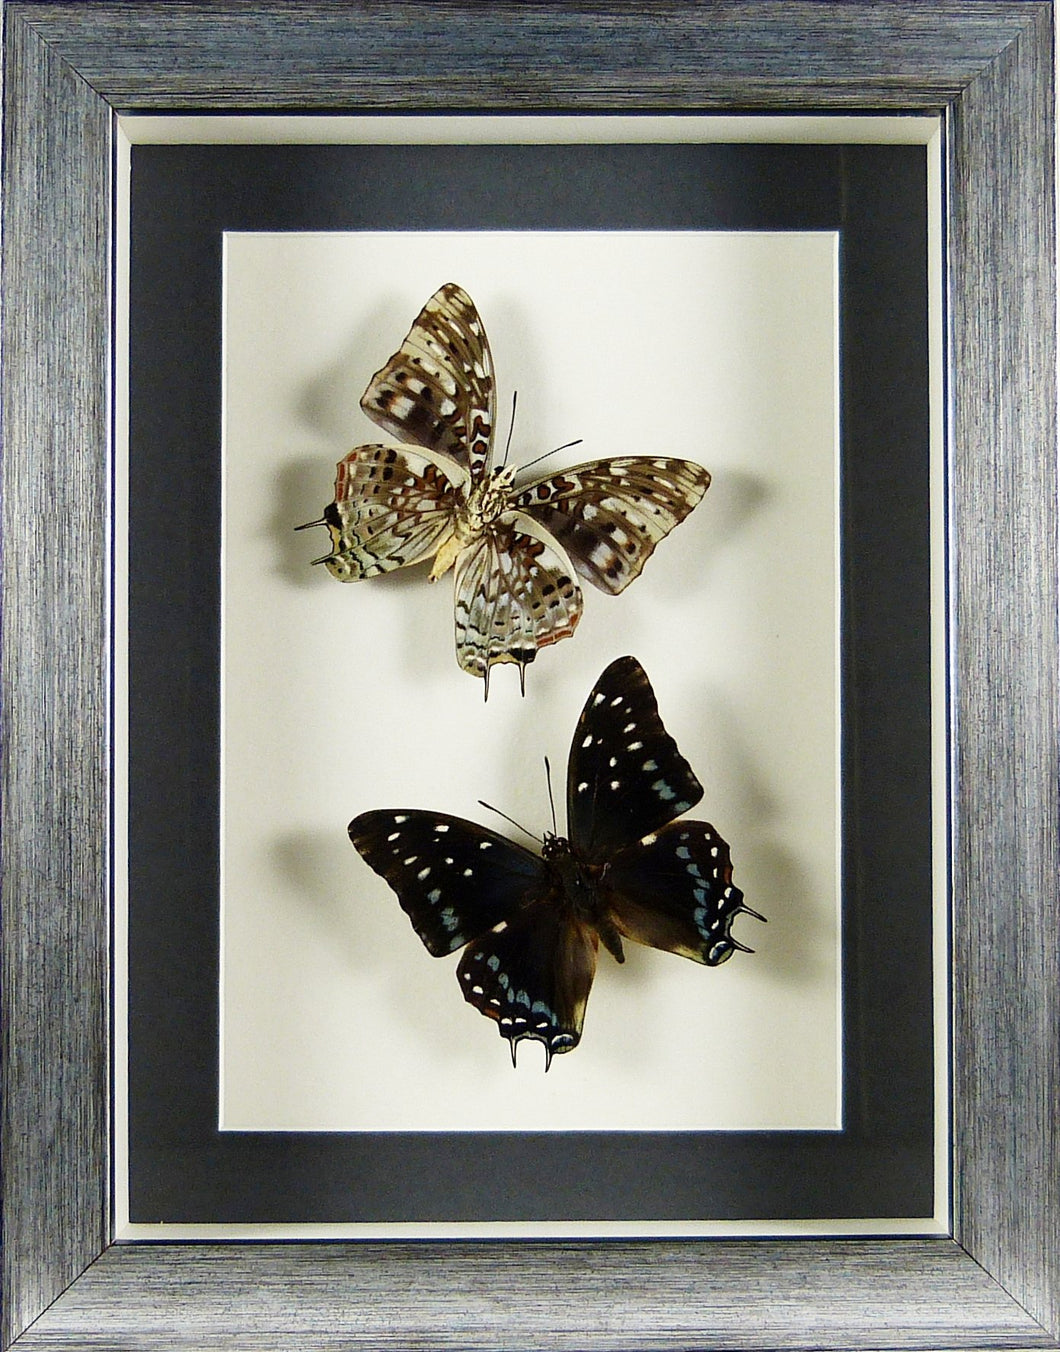 Papillons Charaxes etesipe recto & verso / Cadre argent